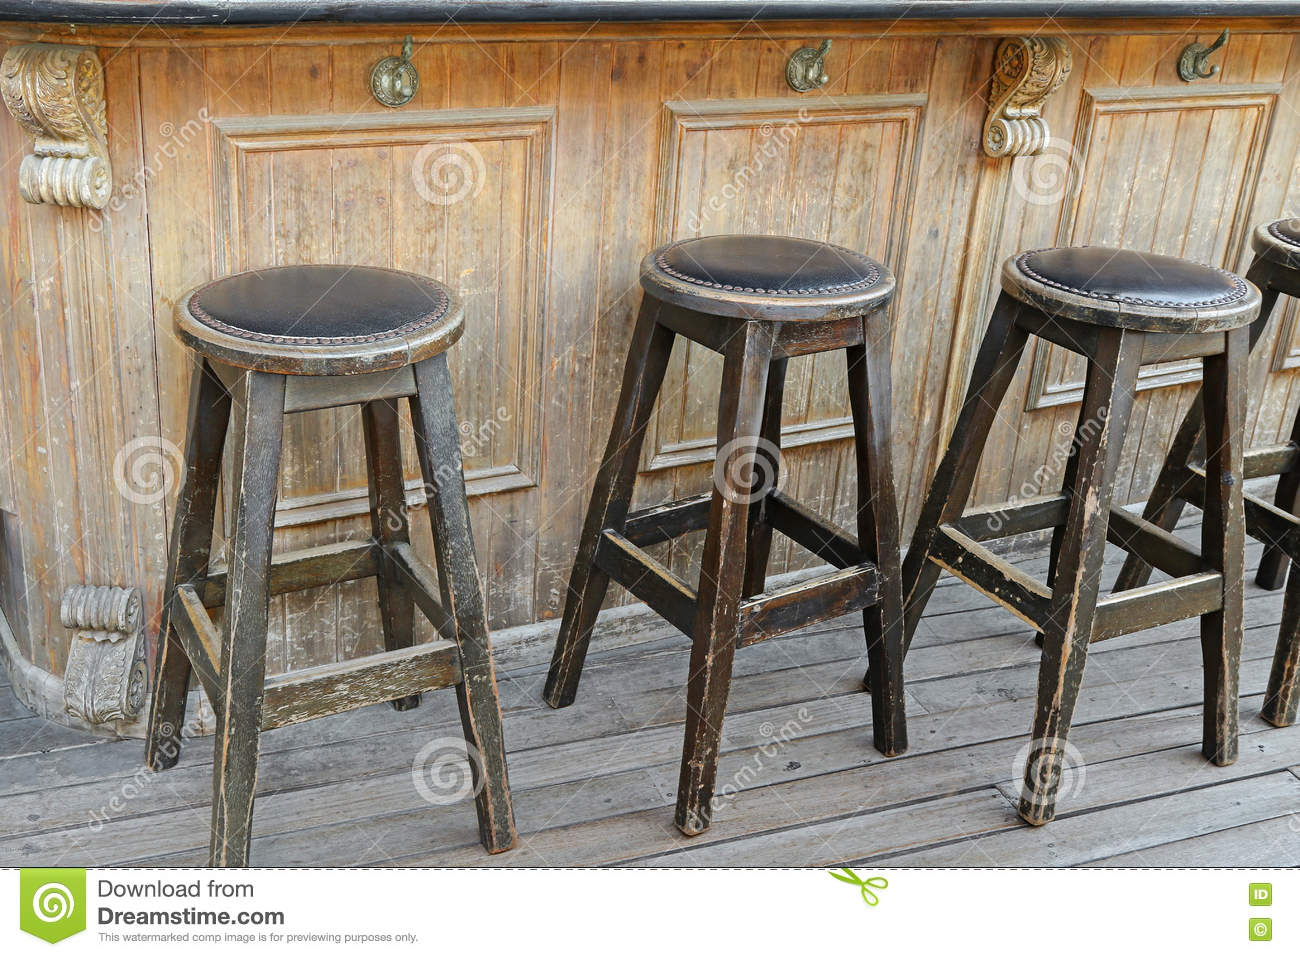 vintage et tabourets de bar en bois rustiques sur le plancher en bois devant photo stock image. Black Bedroom Furniture Sets. Home Design Ideas